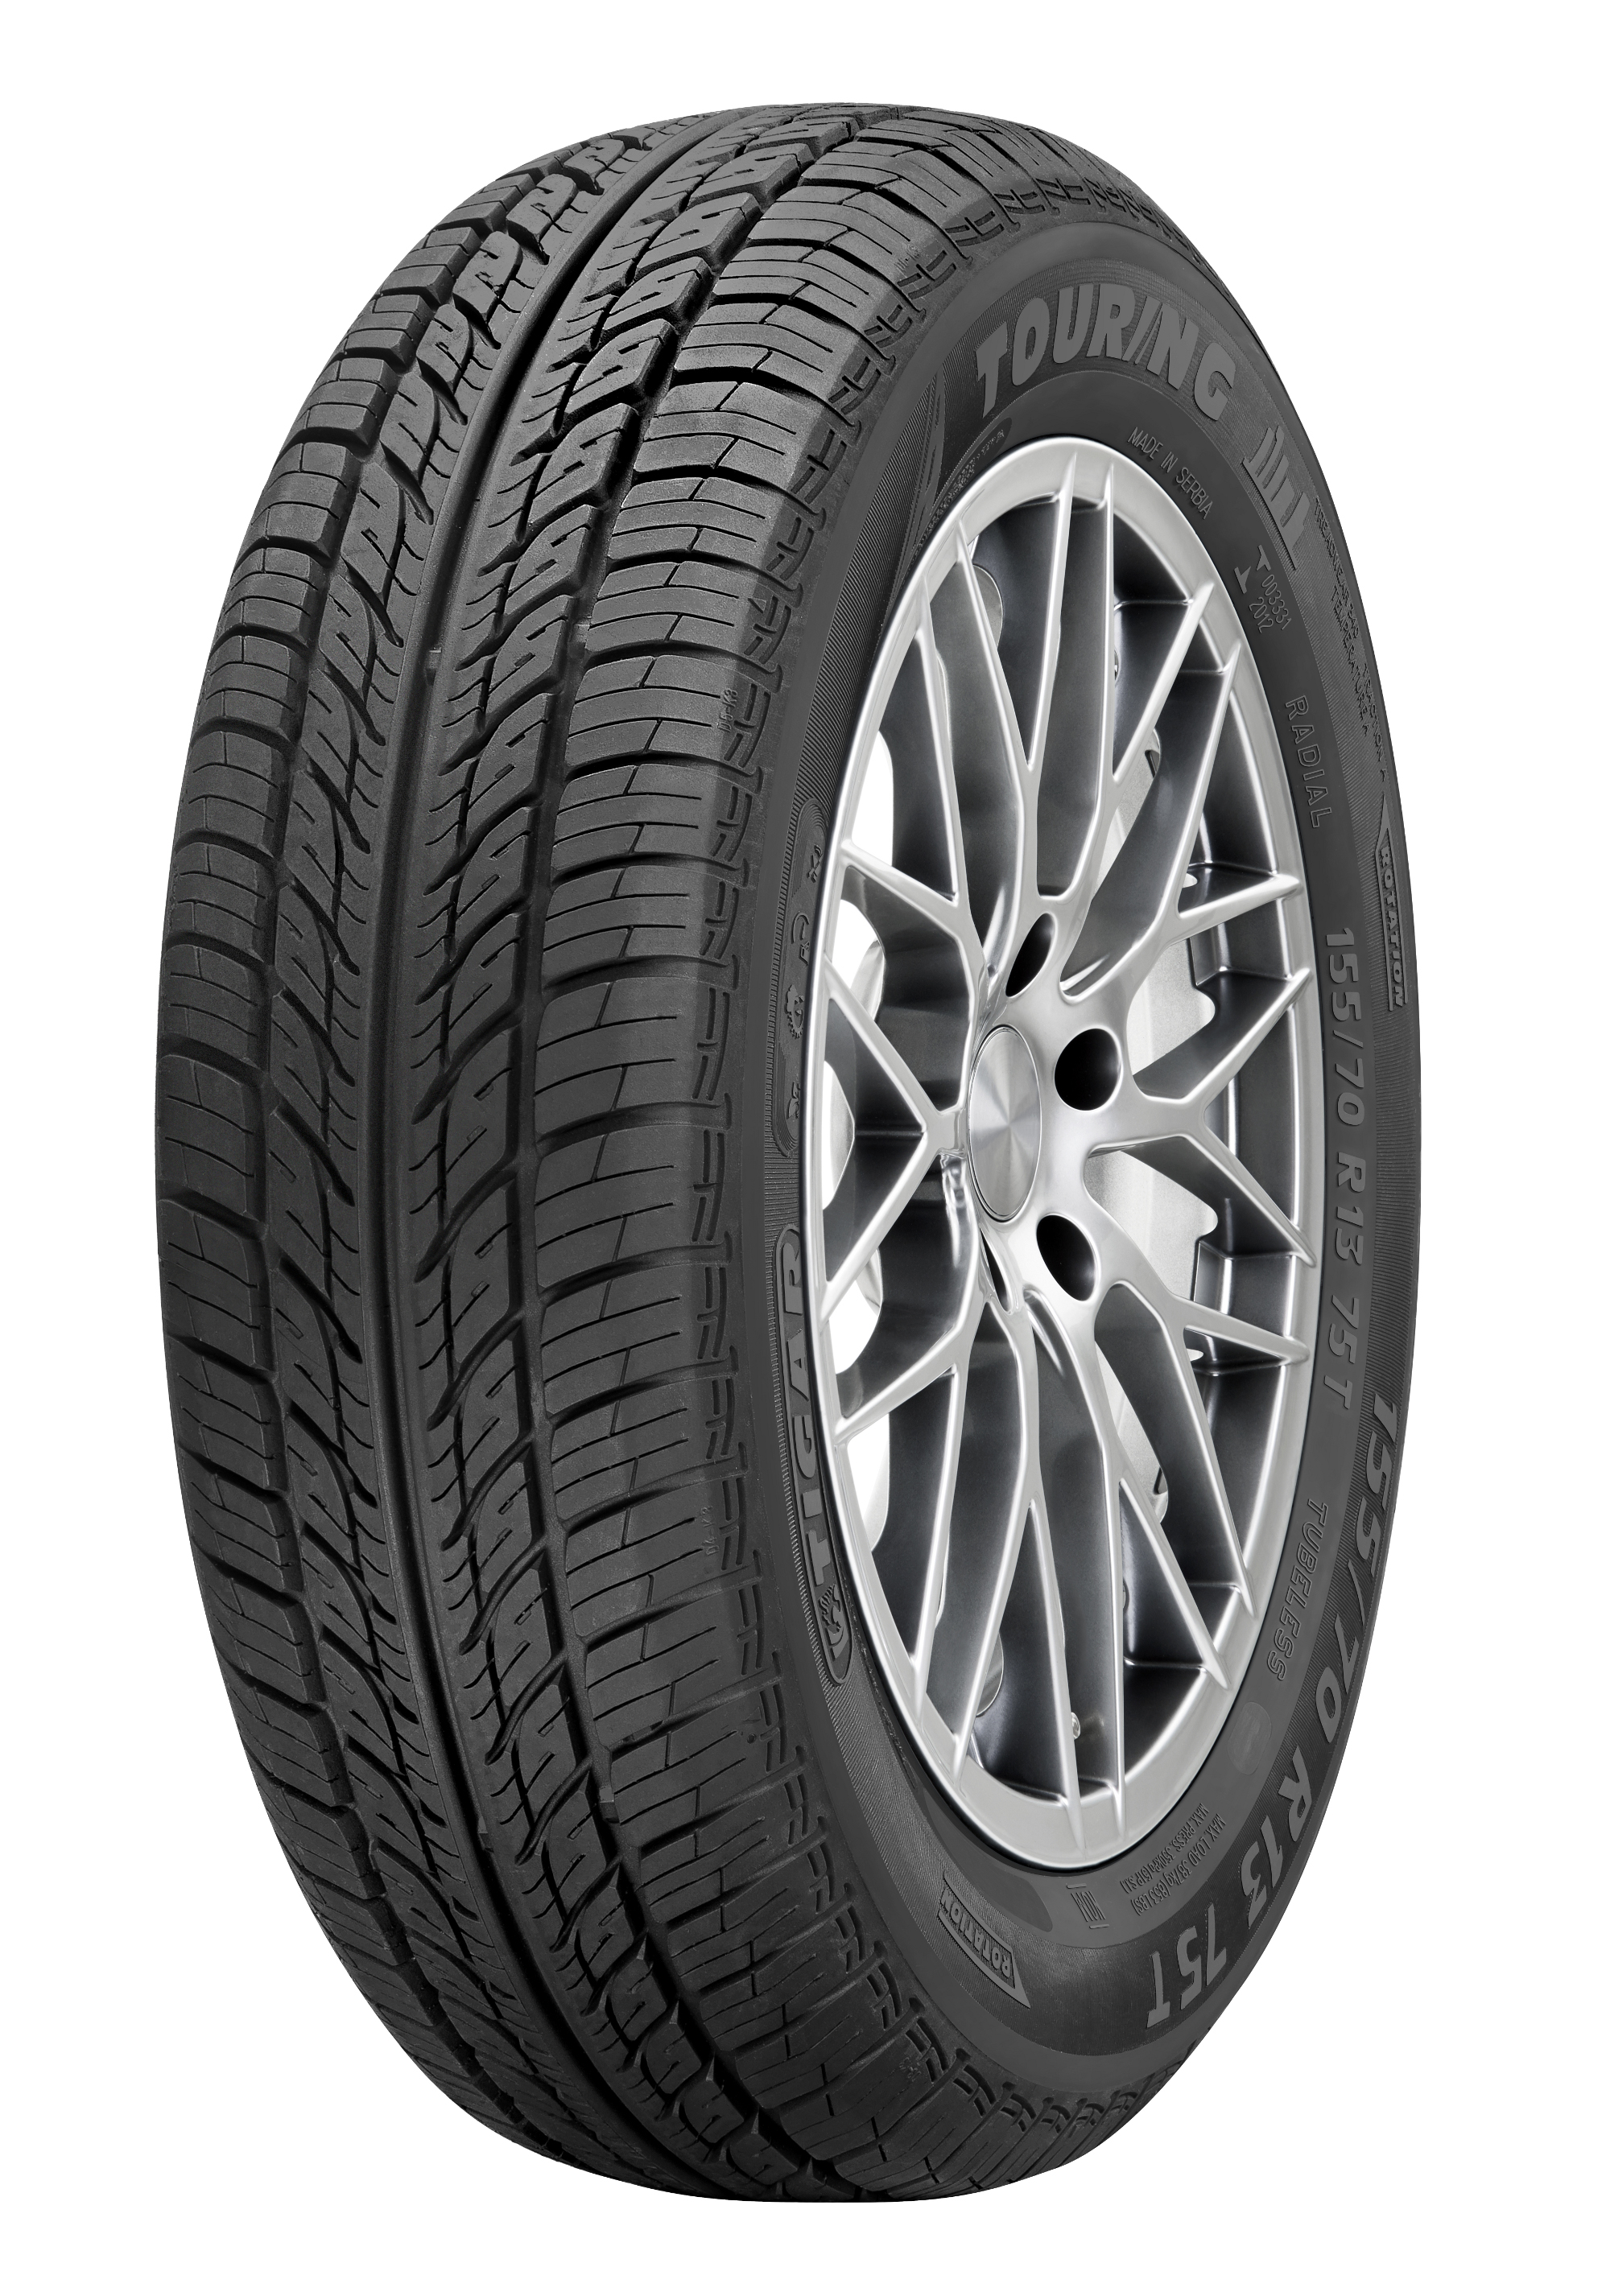 155/65 R14 75T Tigar Touring